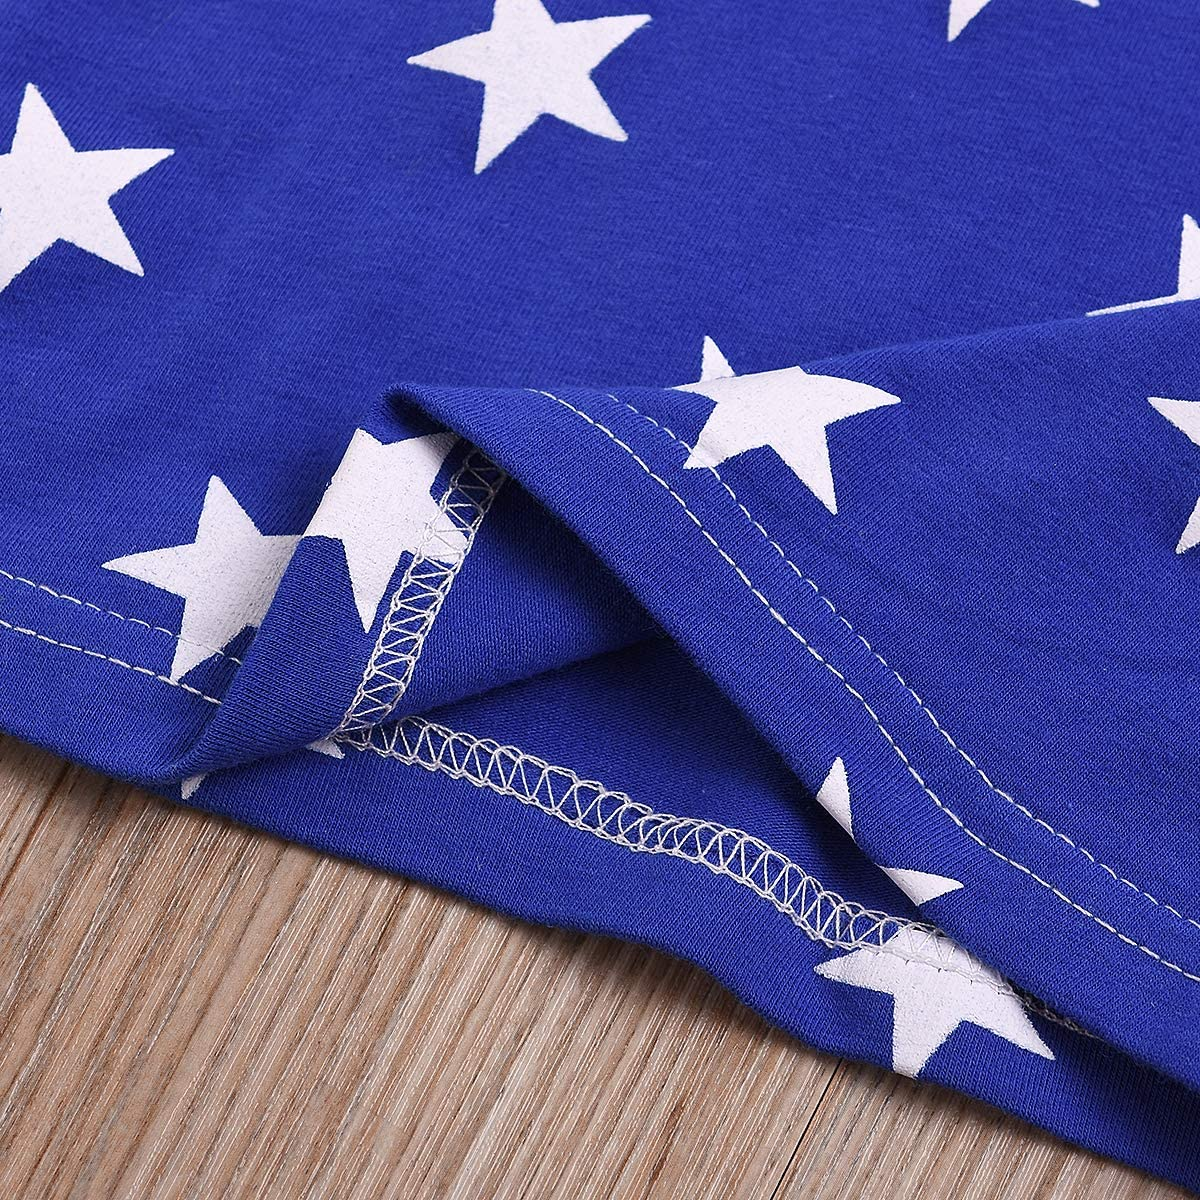 YOUNGER TREE Newborn Baby Boy Girl Pants Set My 1St 4th of July Independence Day American Star Outfits